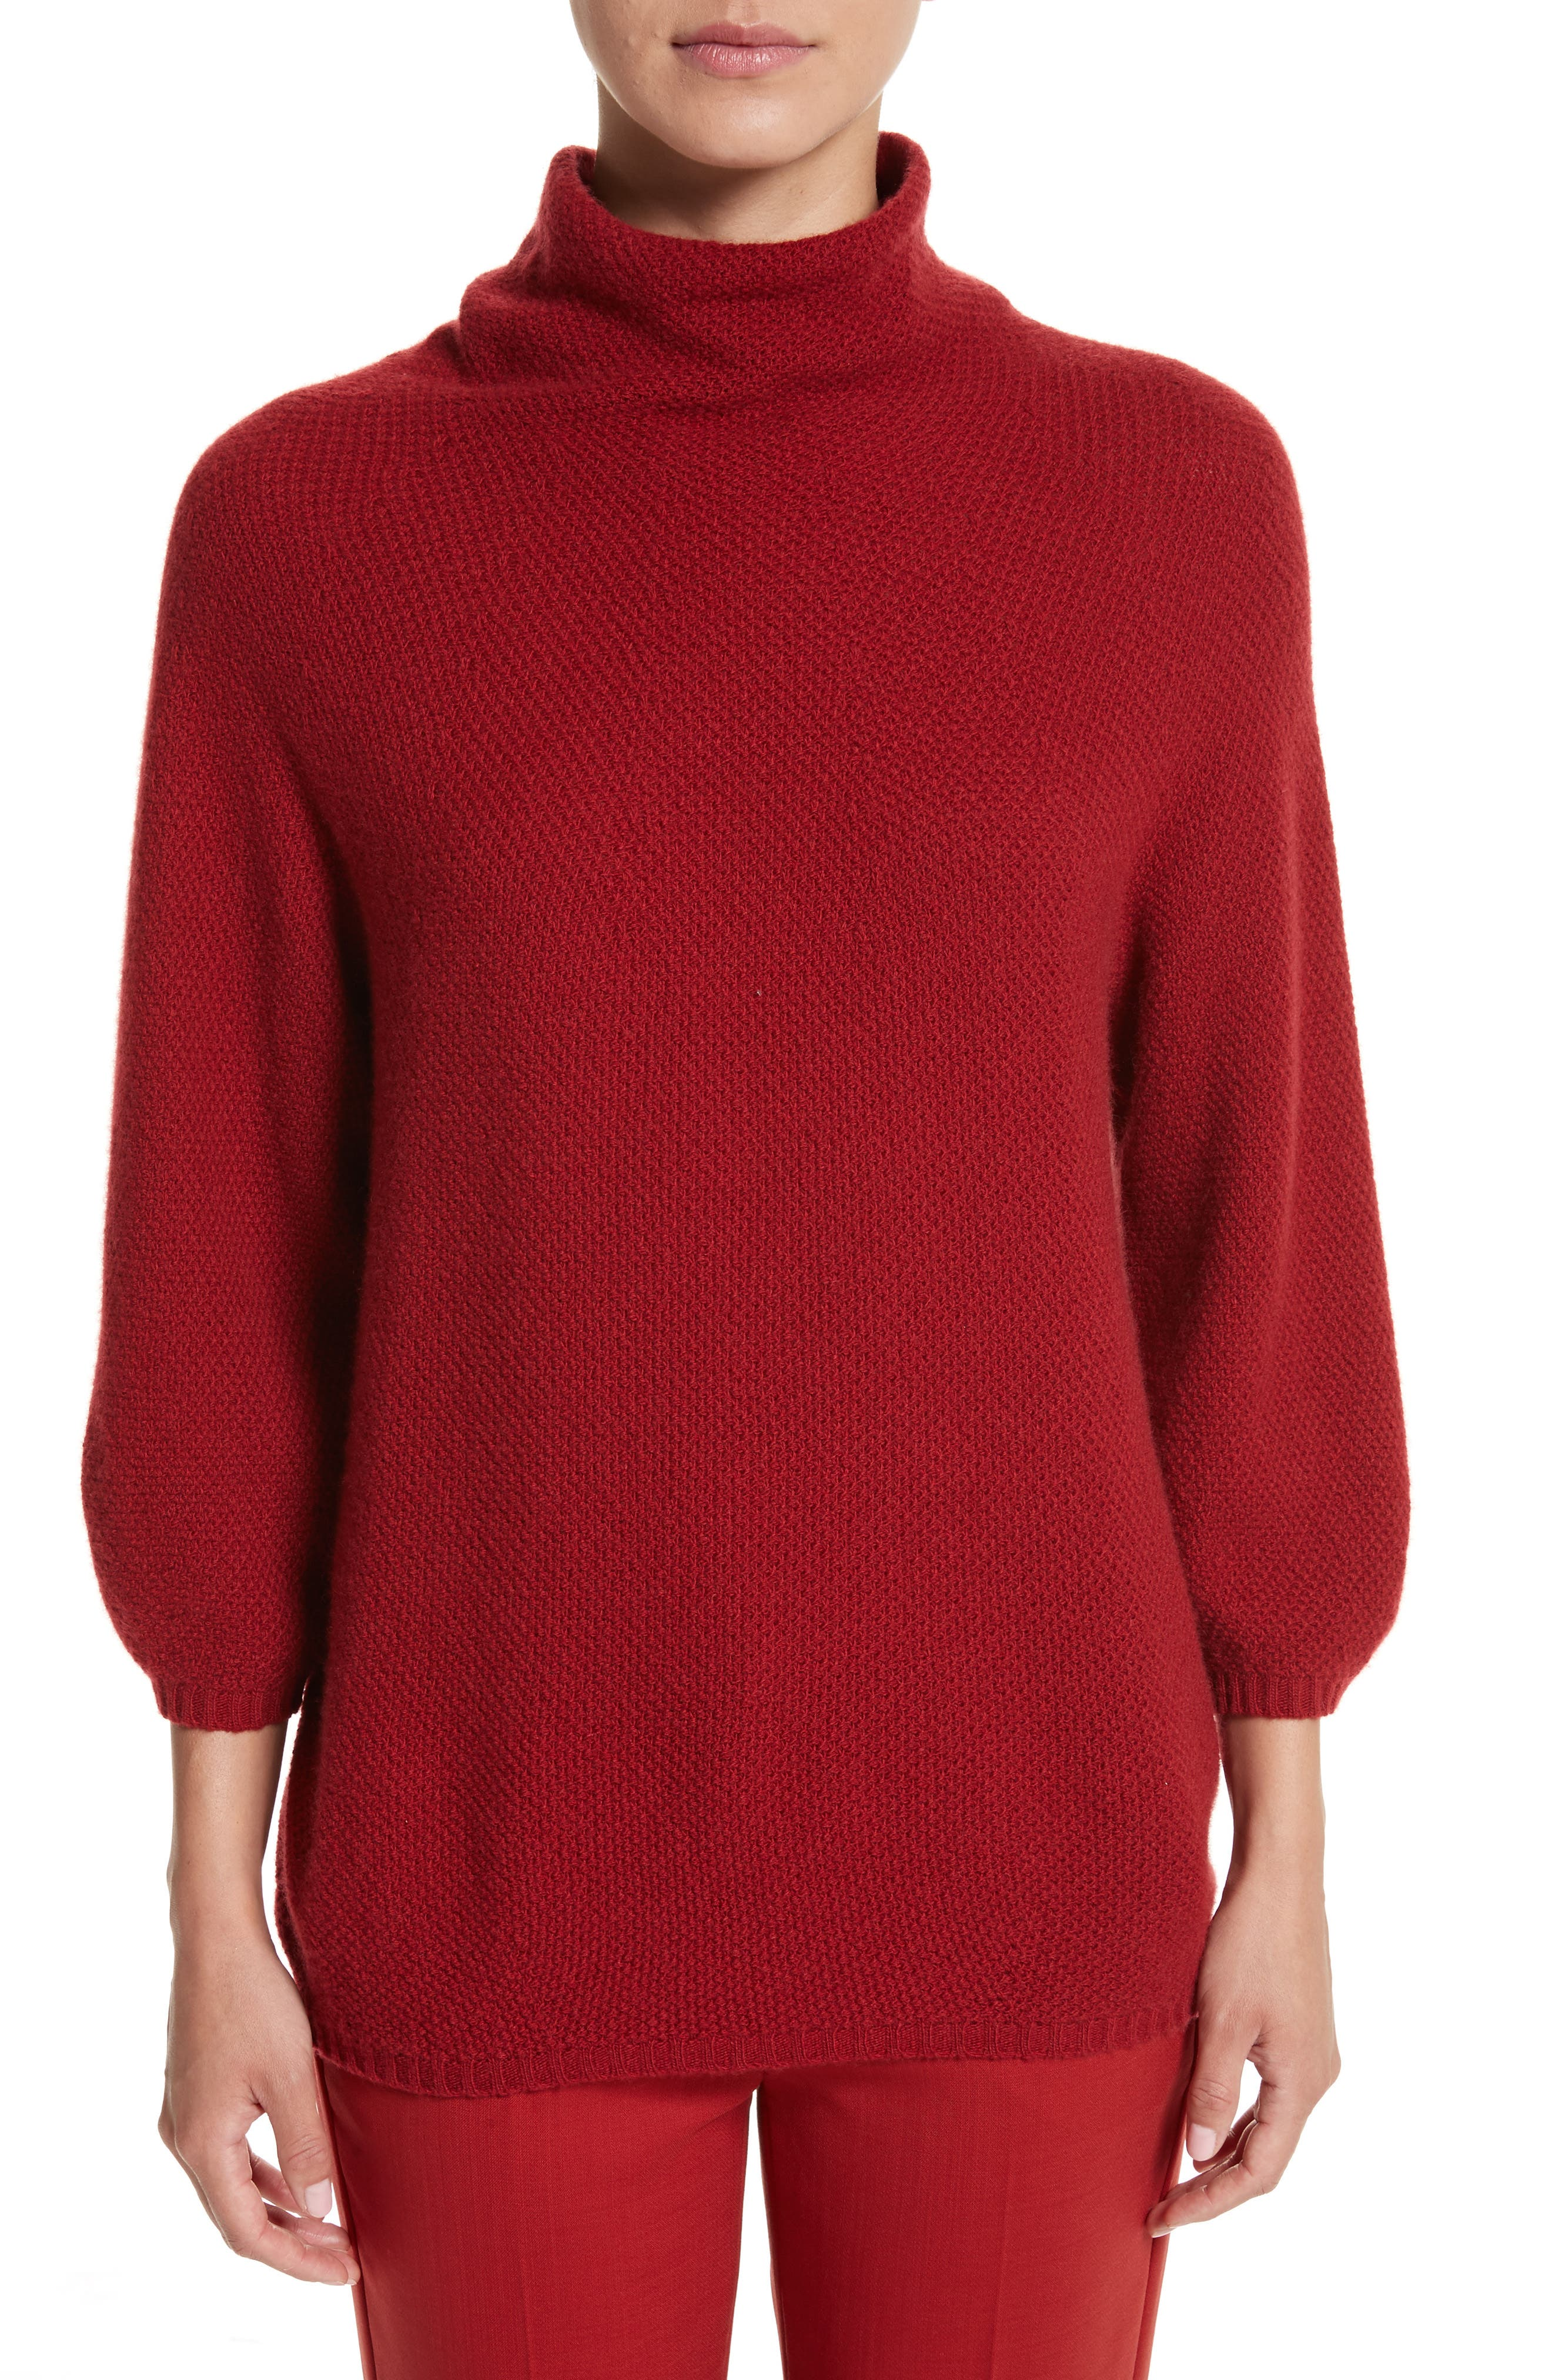 Belgio Wool & Cashmere Sweater,                         Main,                         color, Red